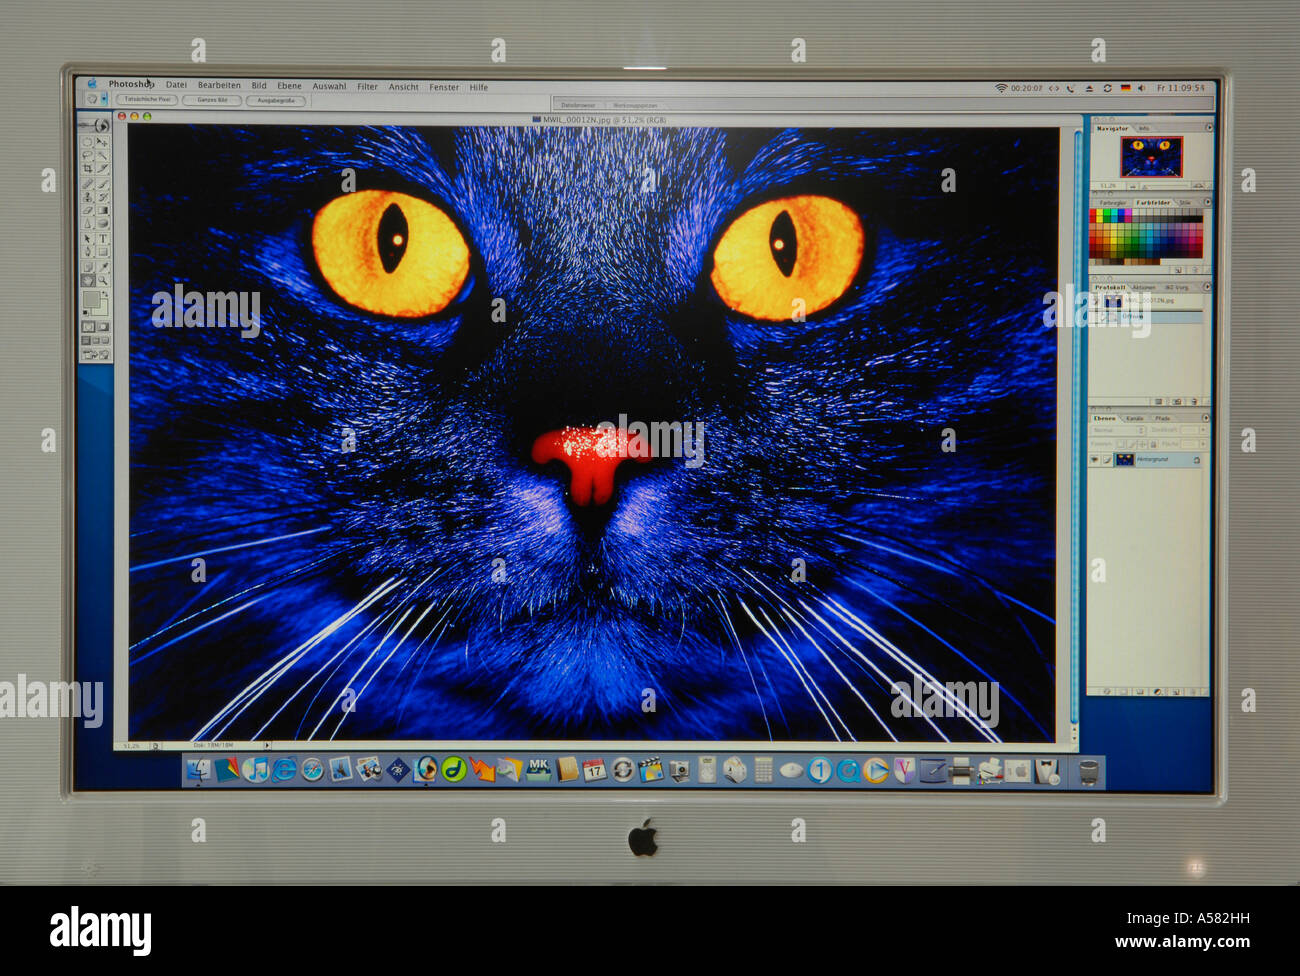 Digital composing with Adobe Photoshop on Apple Cinema Display Stock Photo